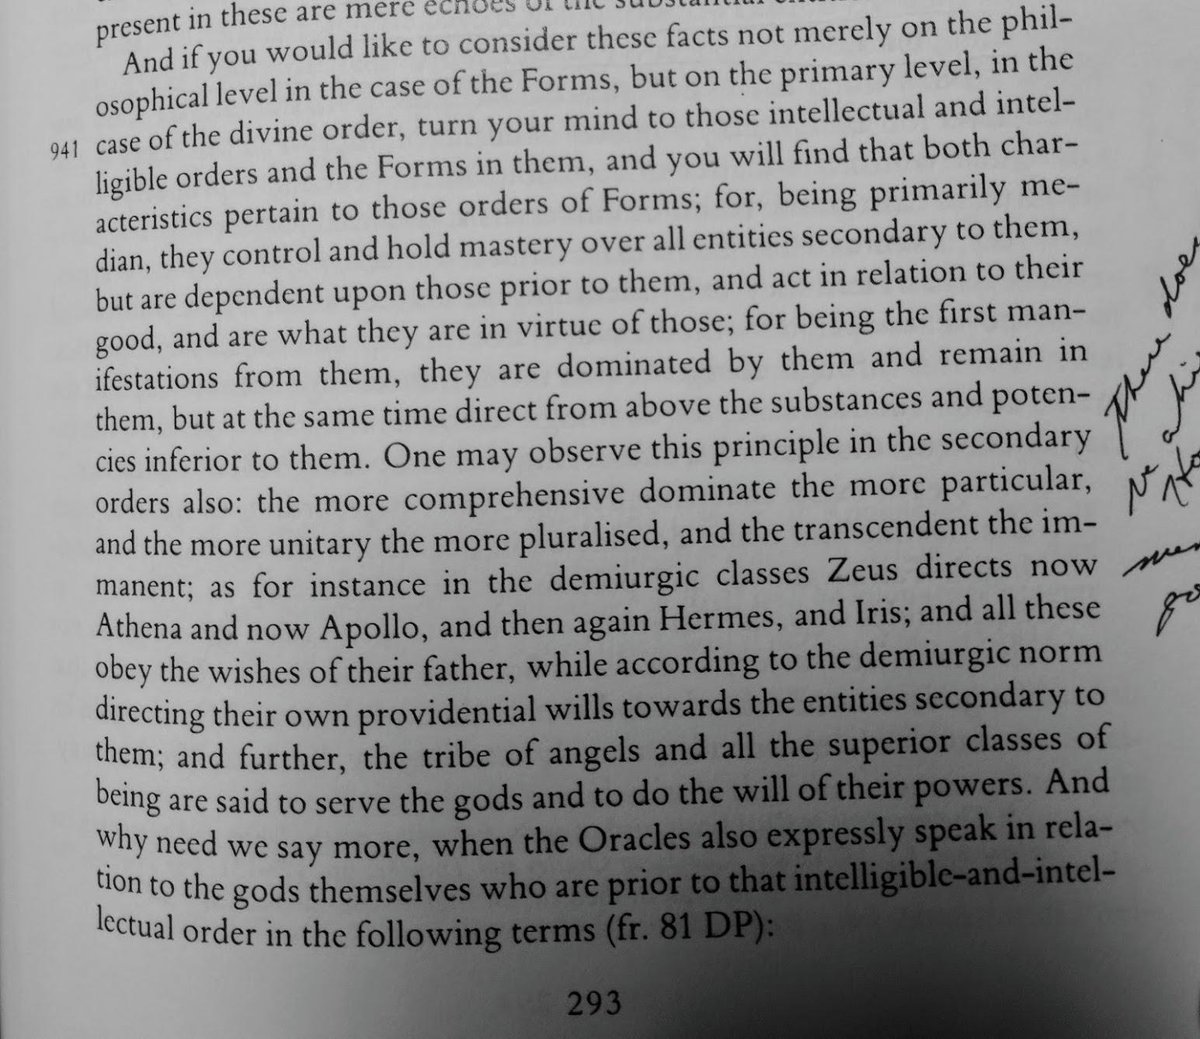 A passage about gods, hierarchy, who serves whom in the divine orders.